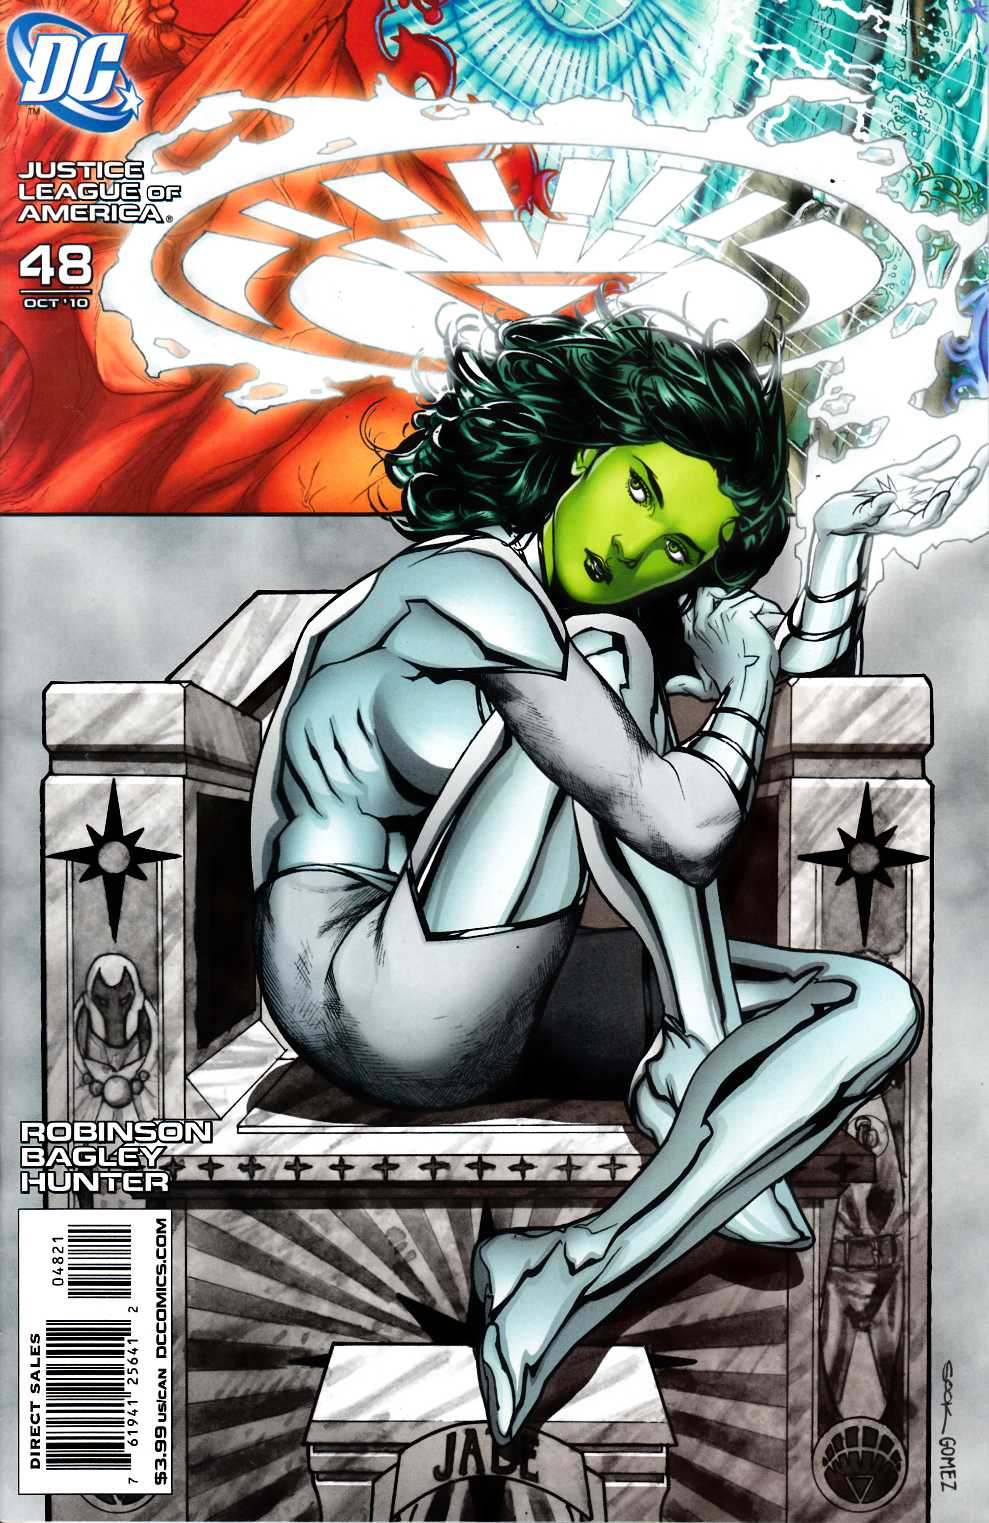 Justice League of America #48 Sook White Lantern Variant Cover Near Mint (9.4) [DC Comic]_THUMBNAIL